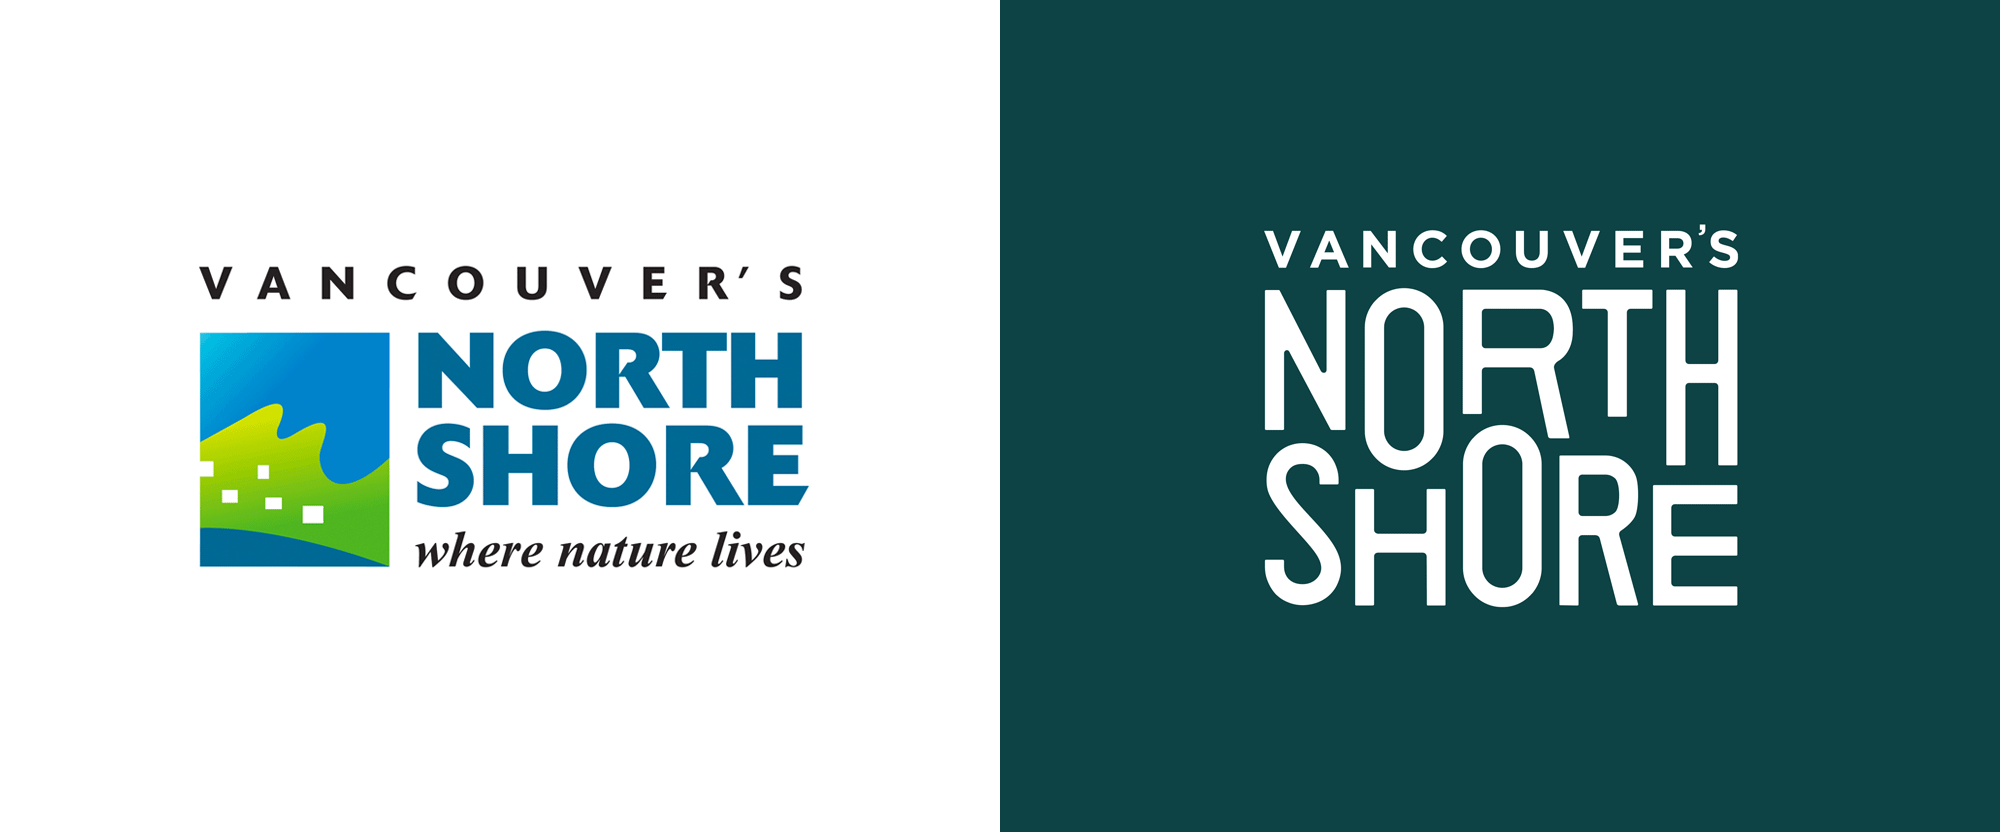 New Logo and Identity for Vancouver's North Shore by LOKI